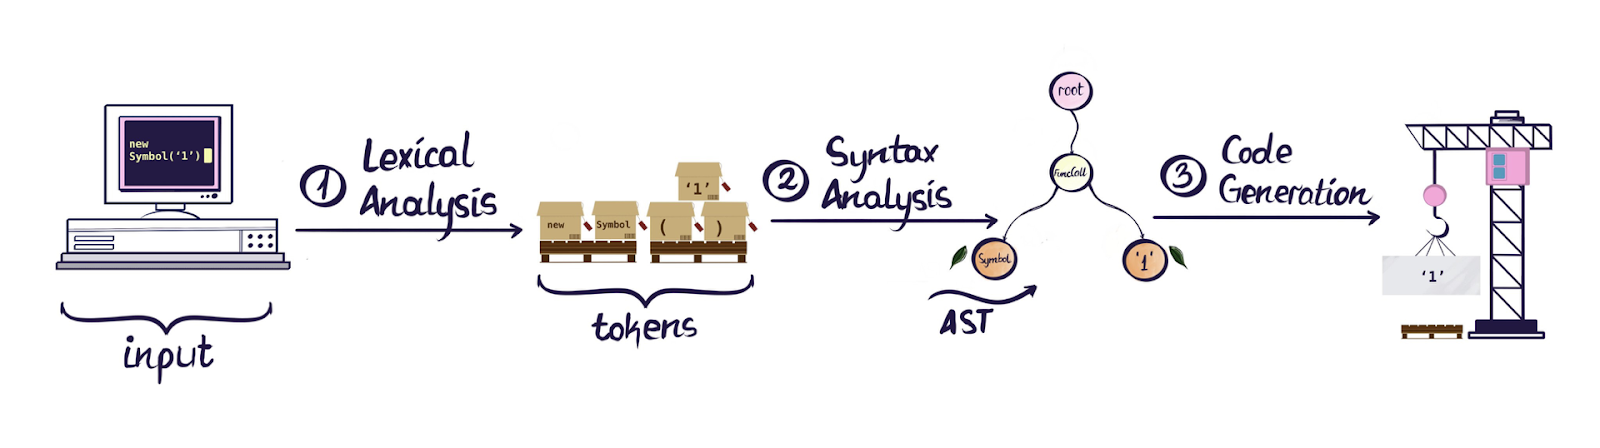 Diagram showing how input is transformed into tokens via Lexical Analysis and then into an AST through Syntax Analysis. Lastly it's transformed into output using Code Generation.